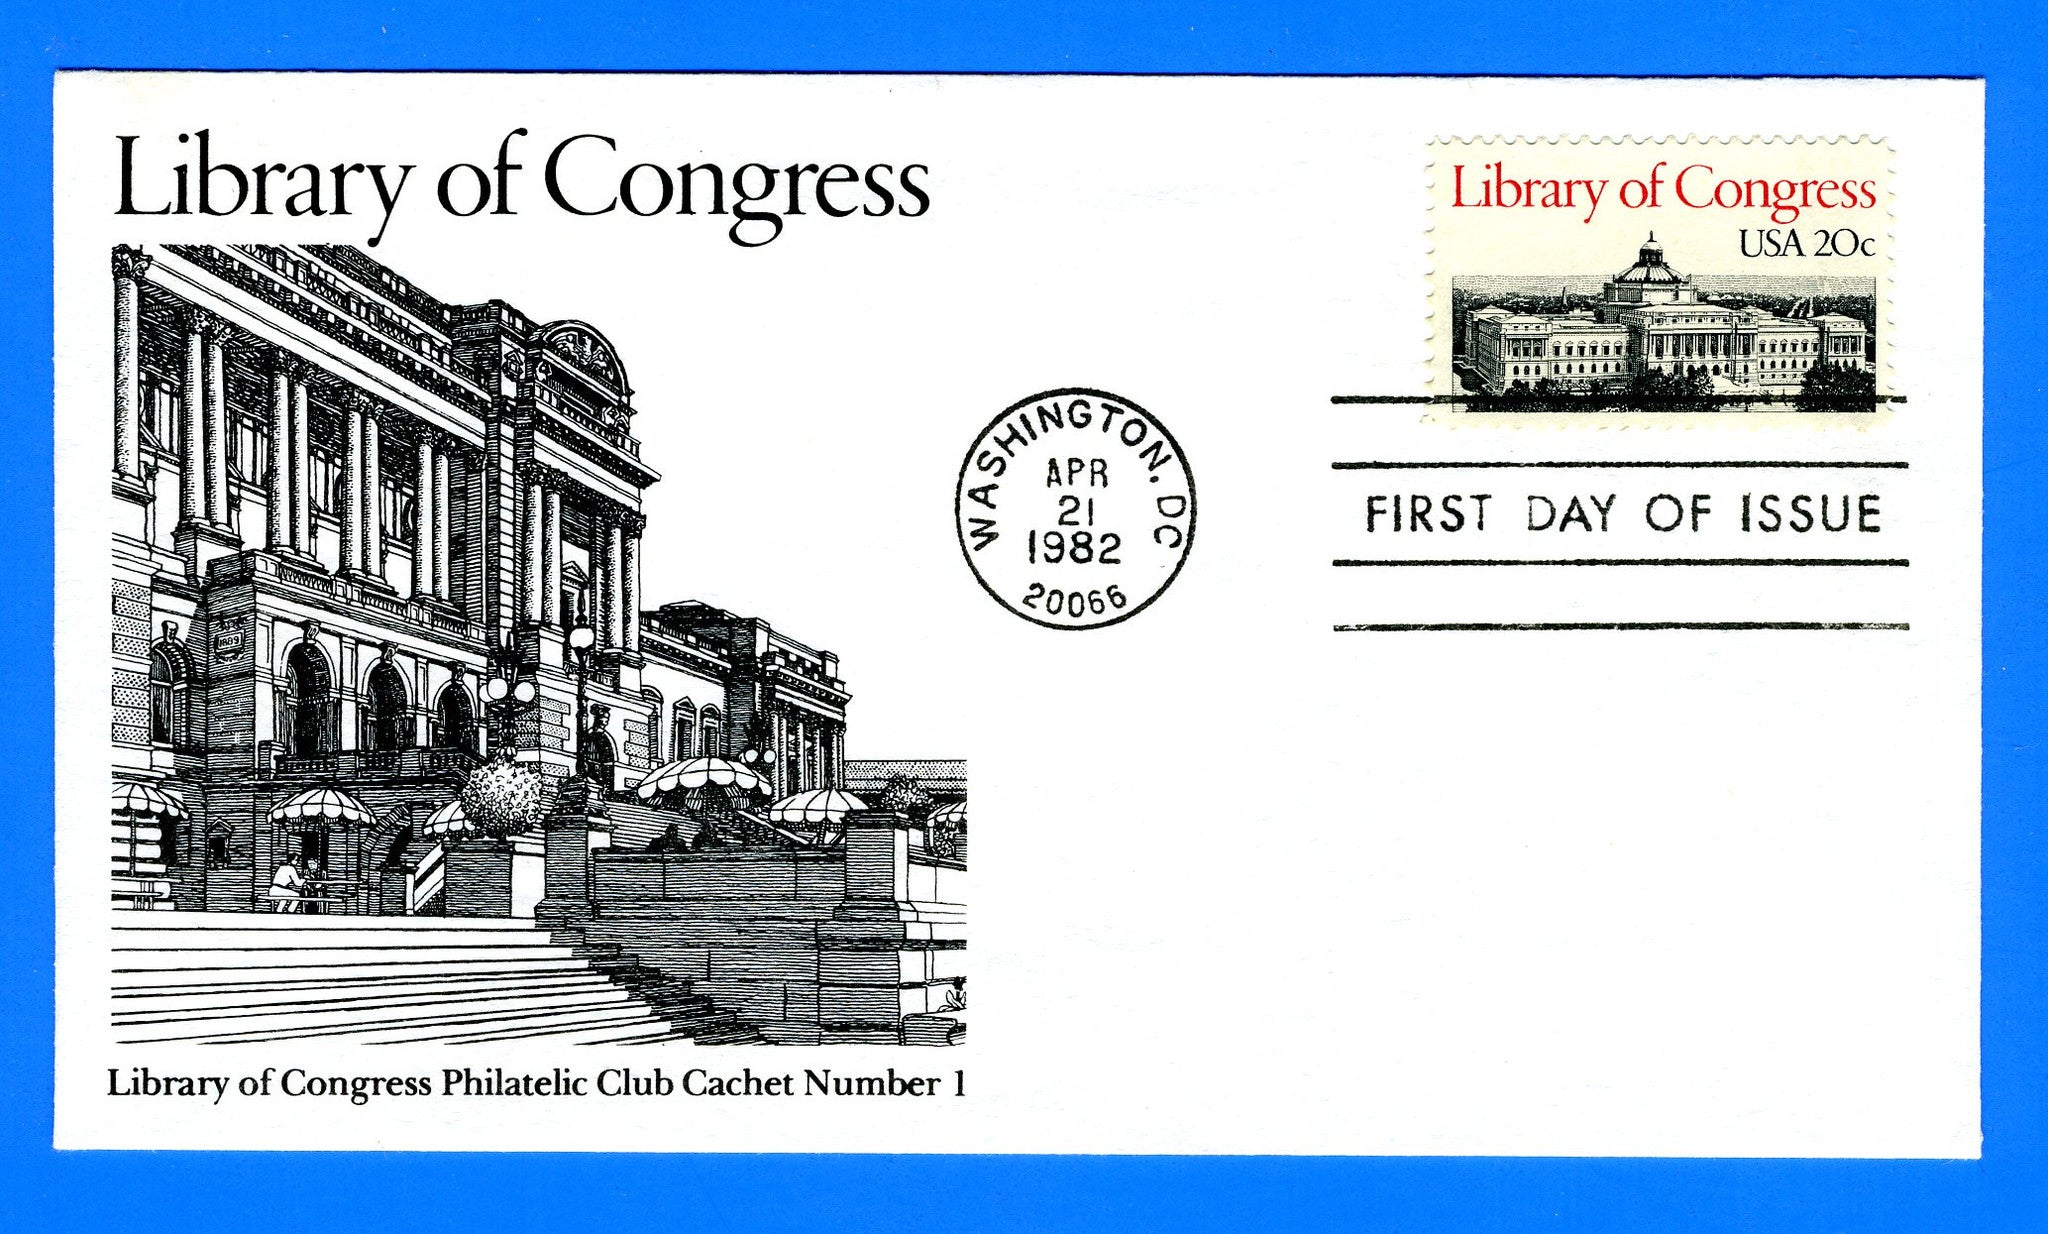 Scott 2004 Library of Congress First Day Cover by Library of Congress Philatelic